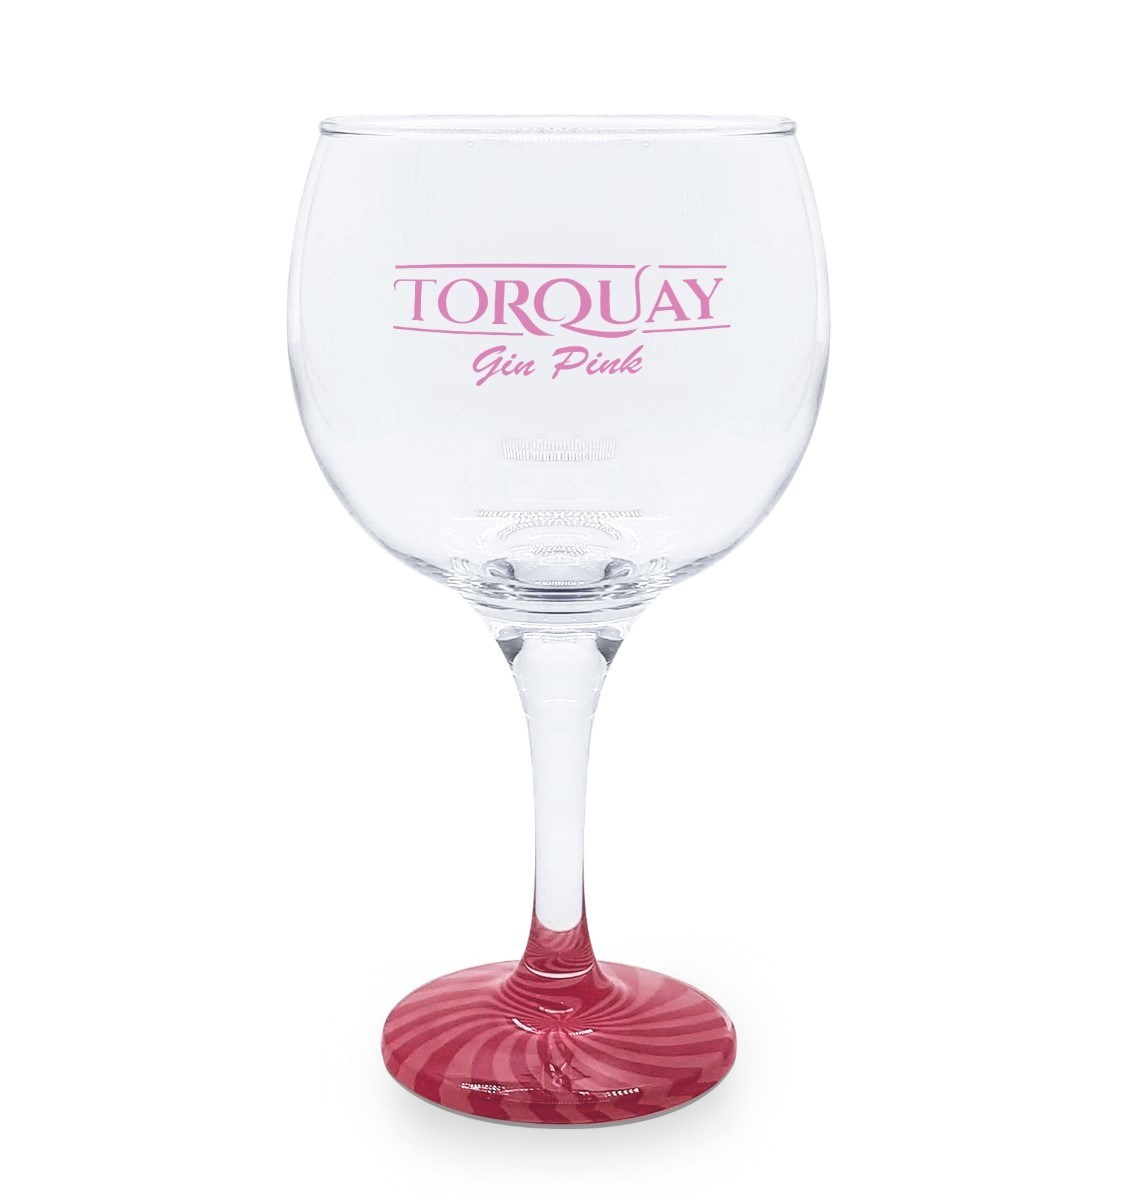 Taça Gin Vidro Torquay Pink com Base Colorida 600ml